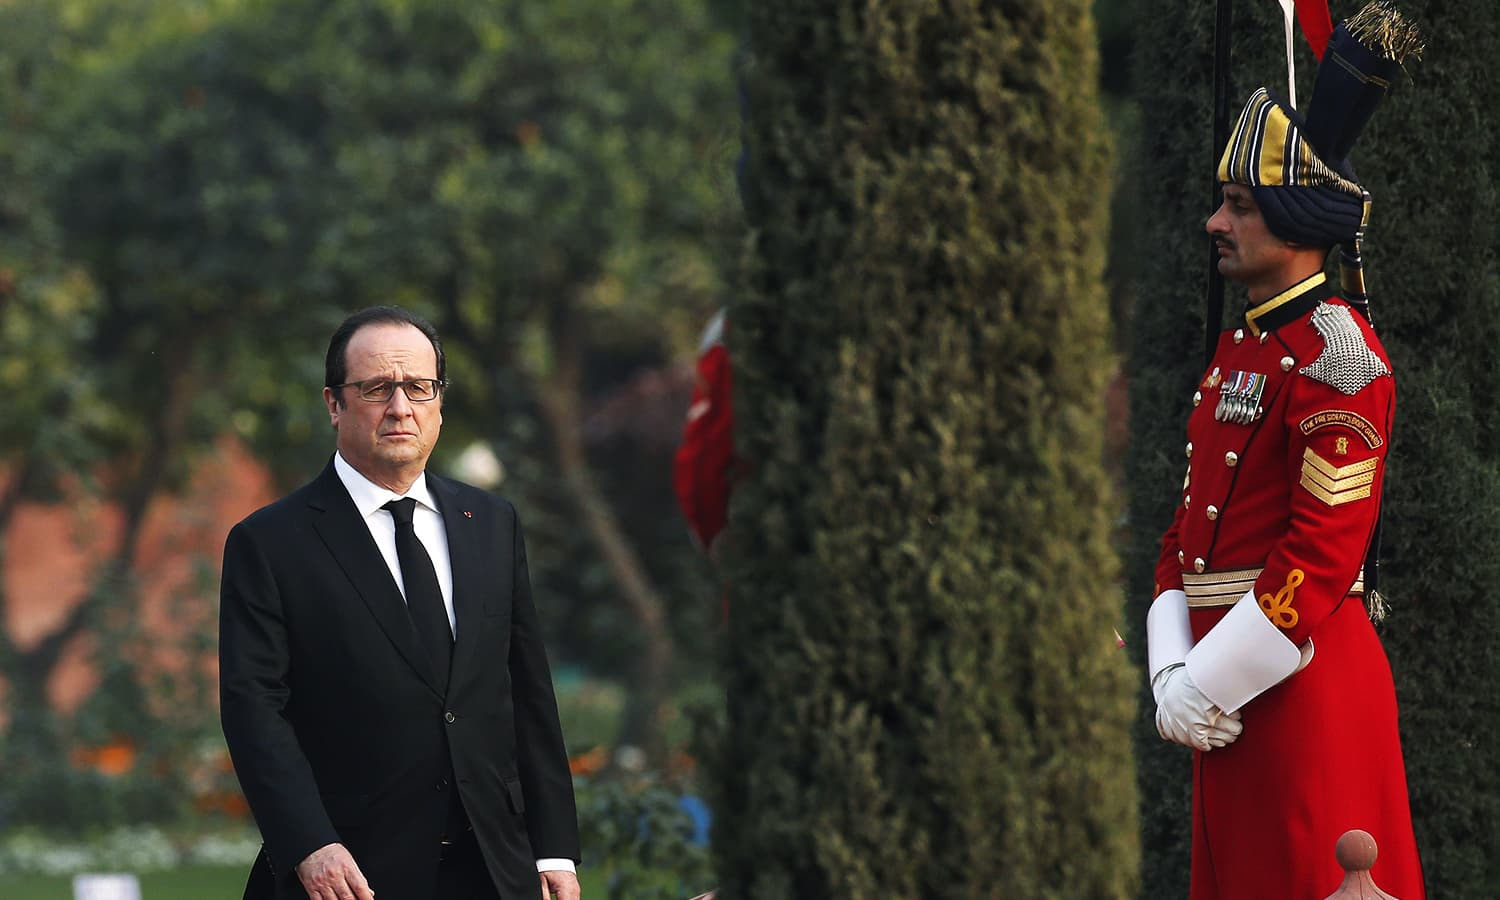 French President Francois Hollande arrives to attend the 'At Home' reception at the Rashtrapati Bhavan presidential palace after India's Republic Day parade. ─ Reuters